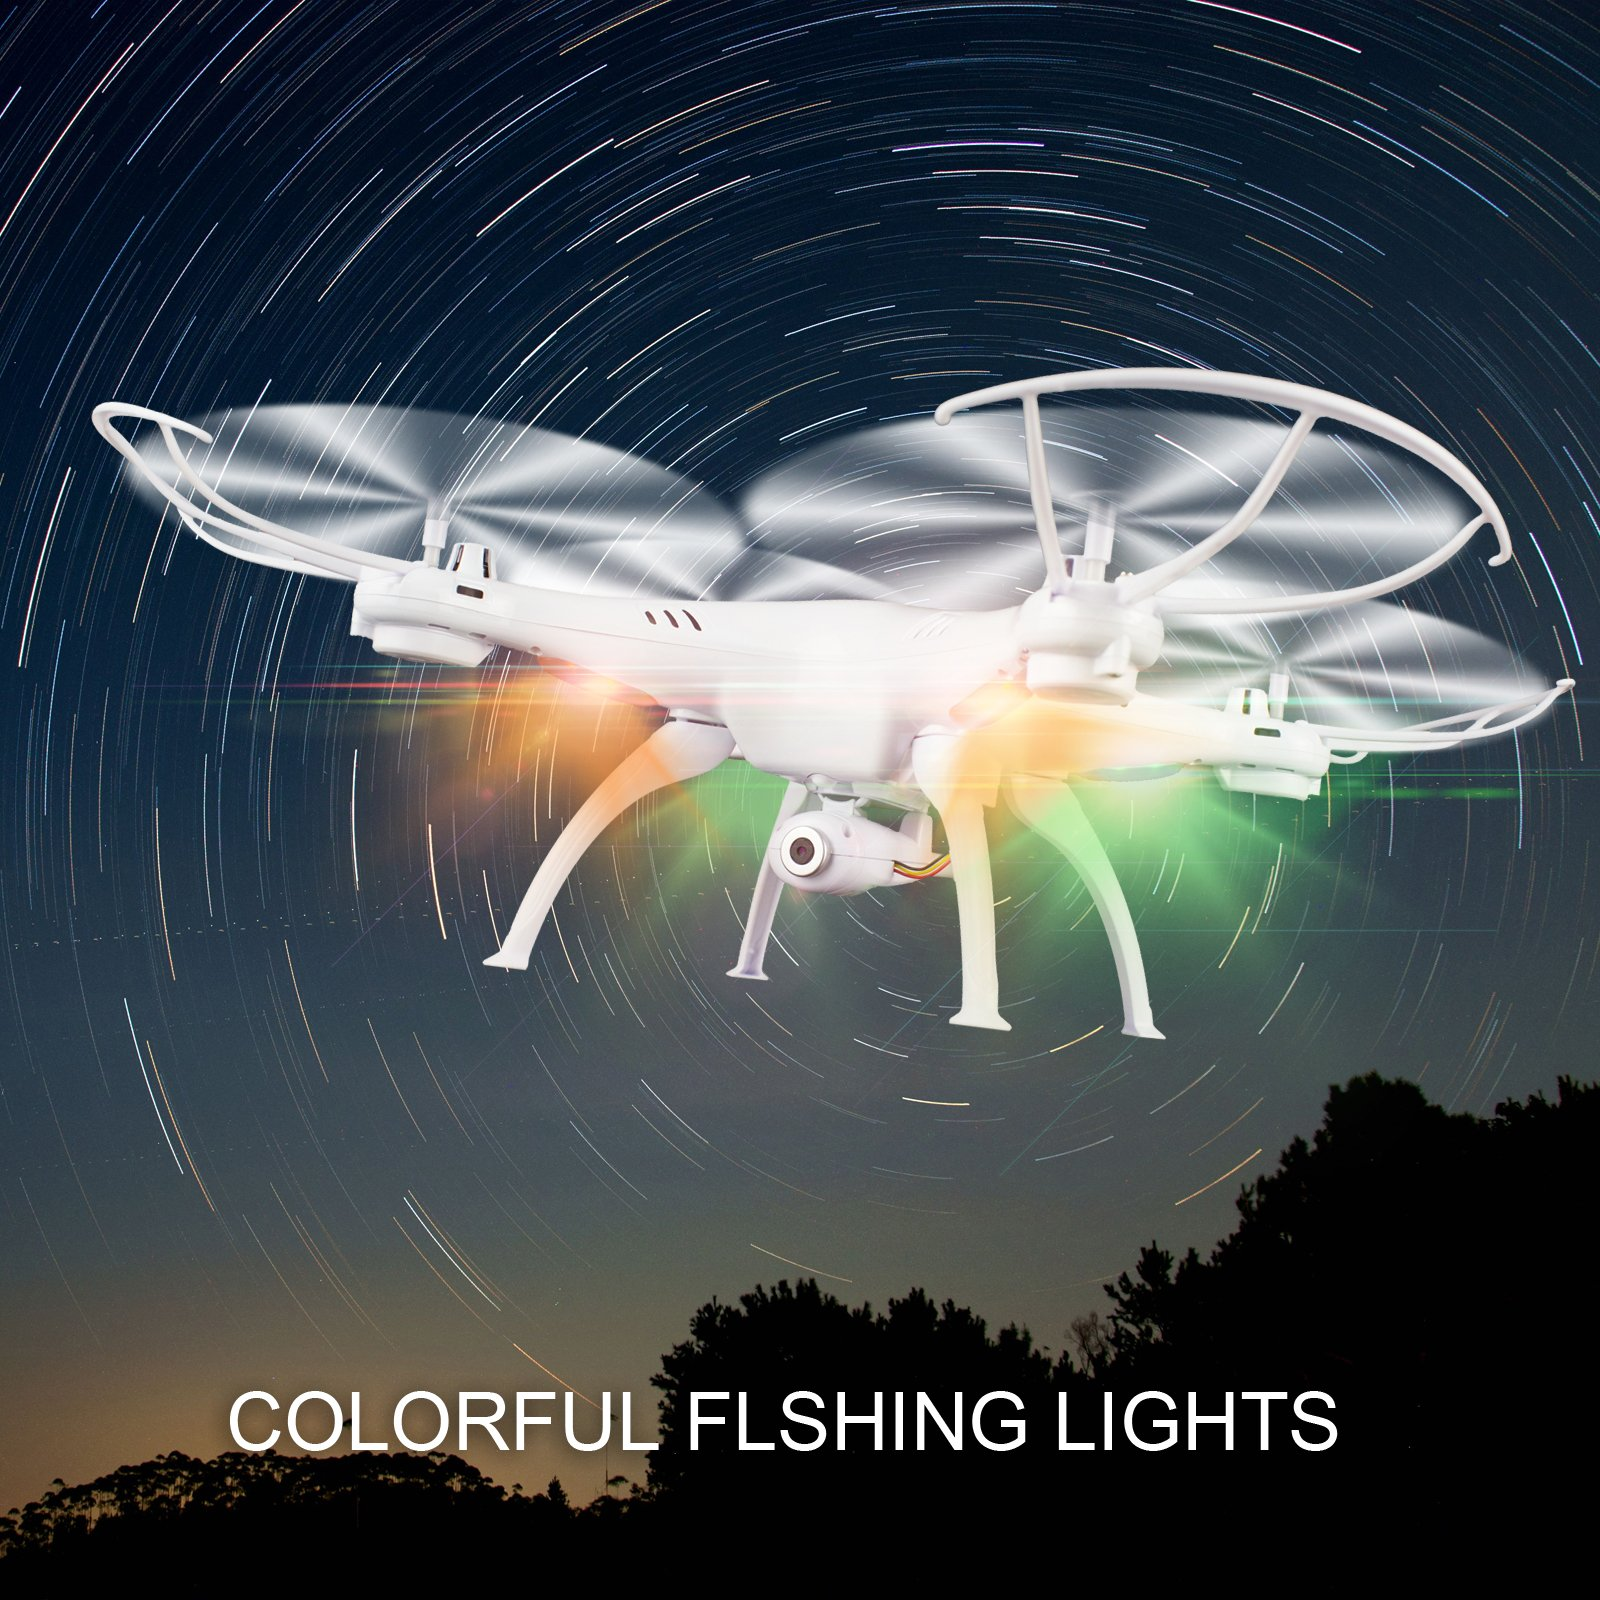 Cheerwing Syma X5SW-V3 FPV Explorers2 2.4Ghz 4CH 6-Axis Gyro RC Headless Quadcopter Drone UFO with HD Wifi Camera (White) by Cheerwing (Image #5)